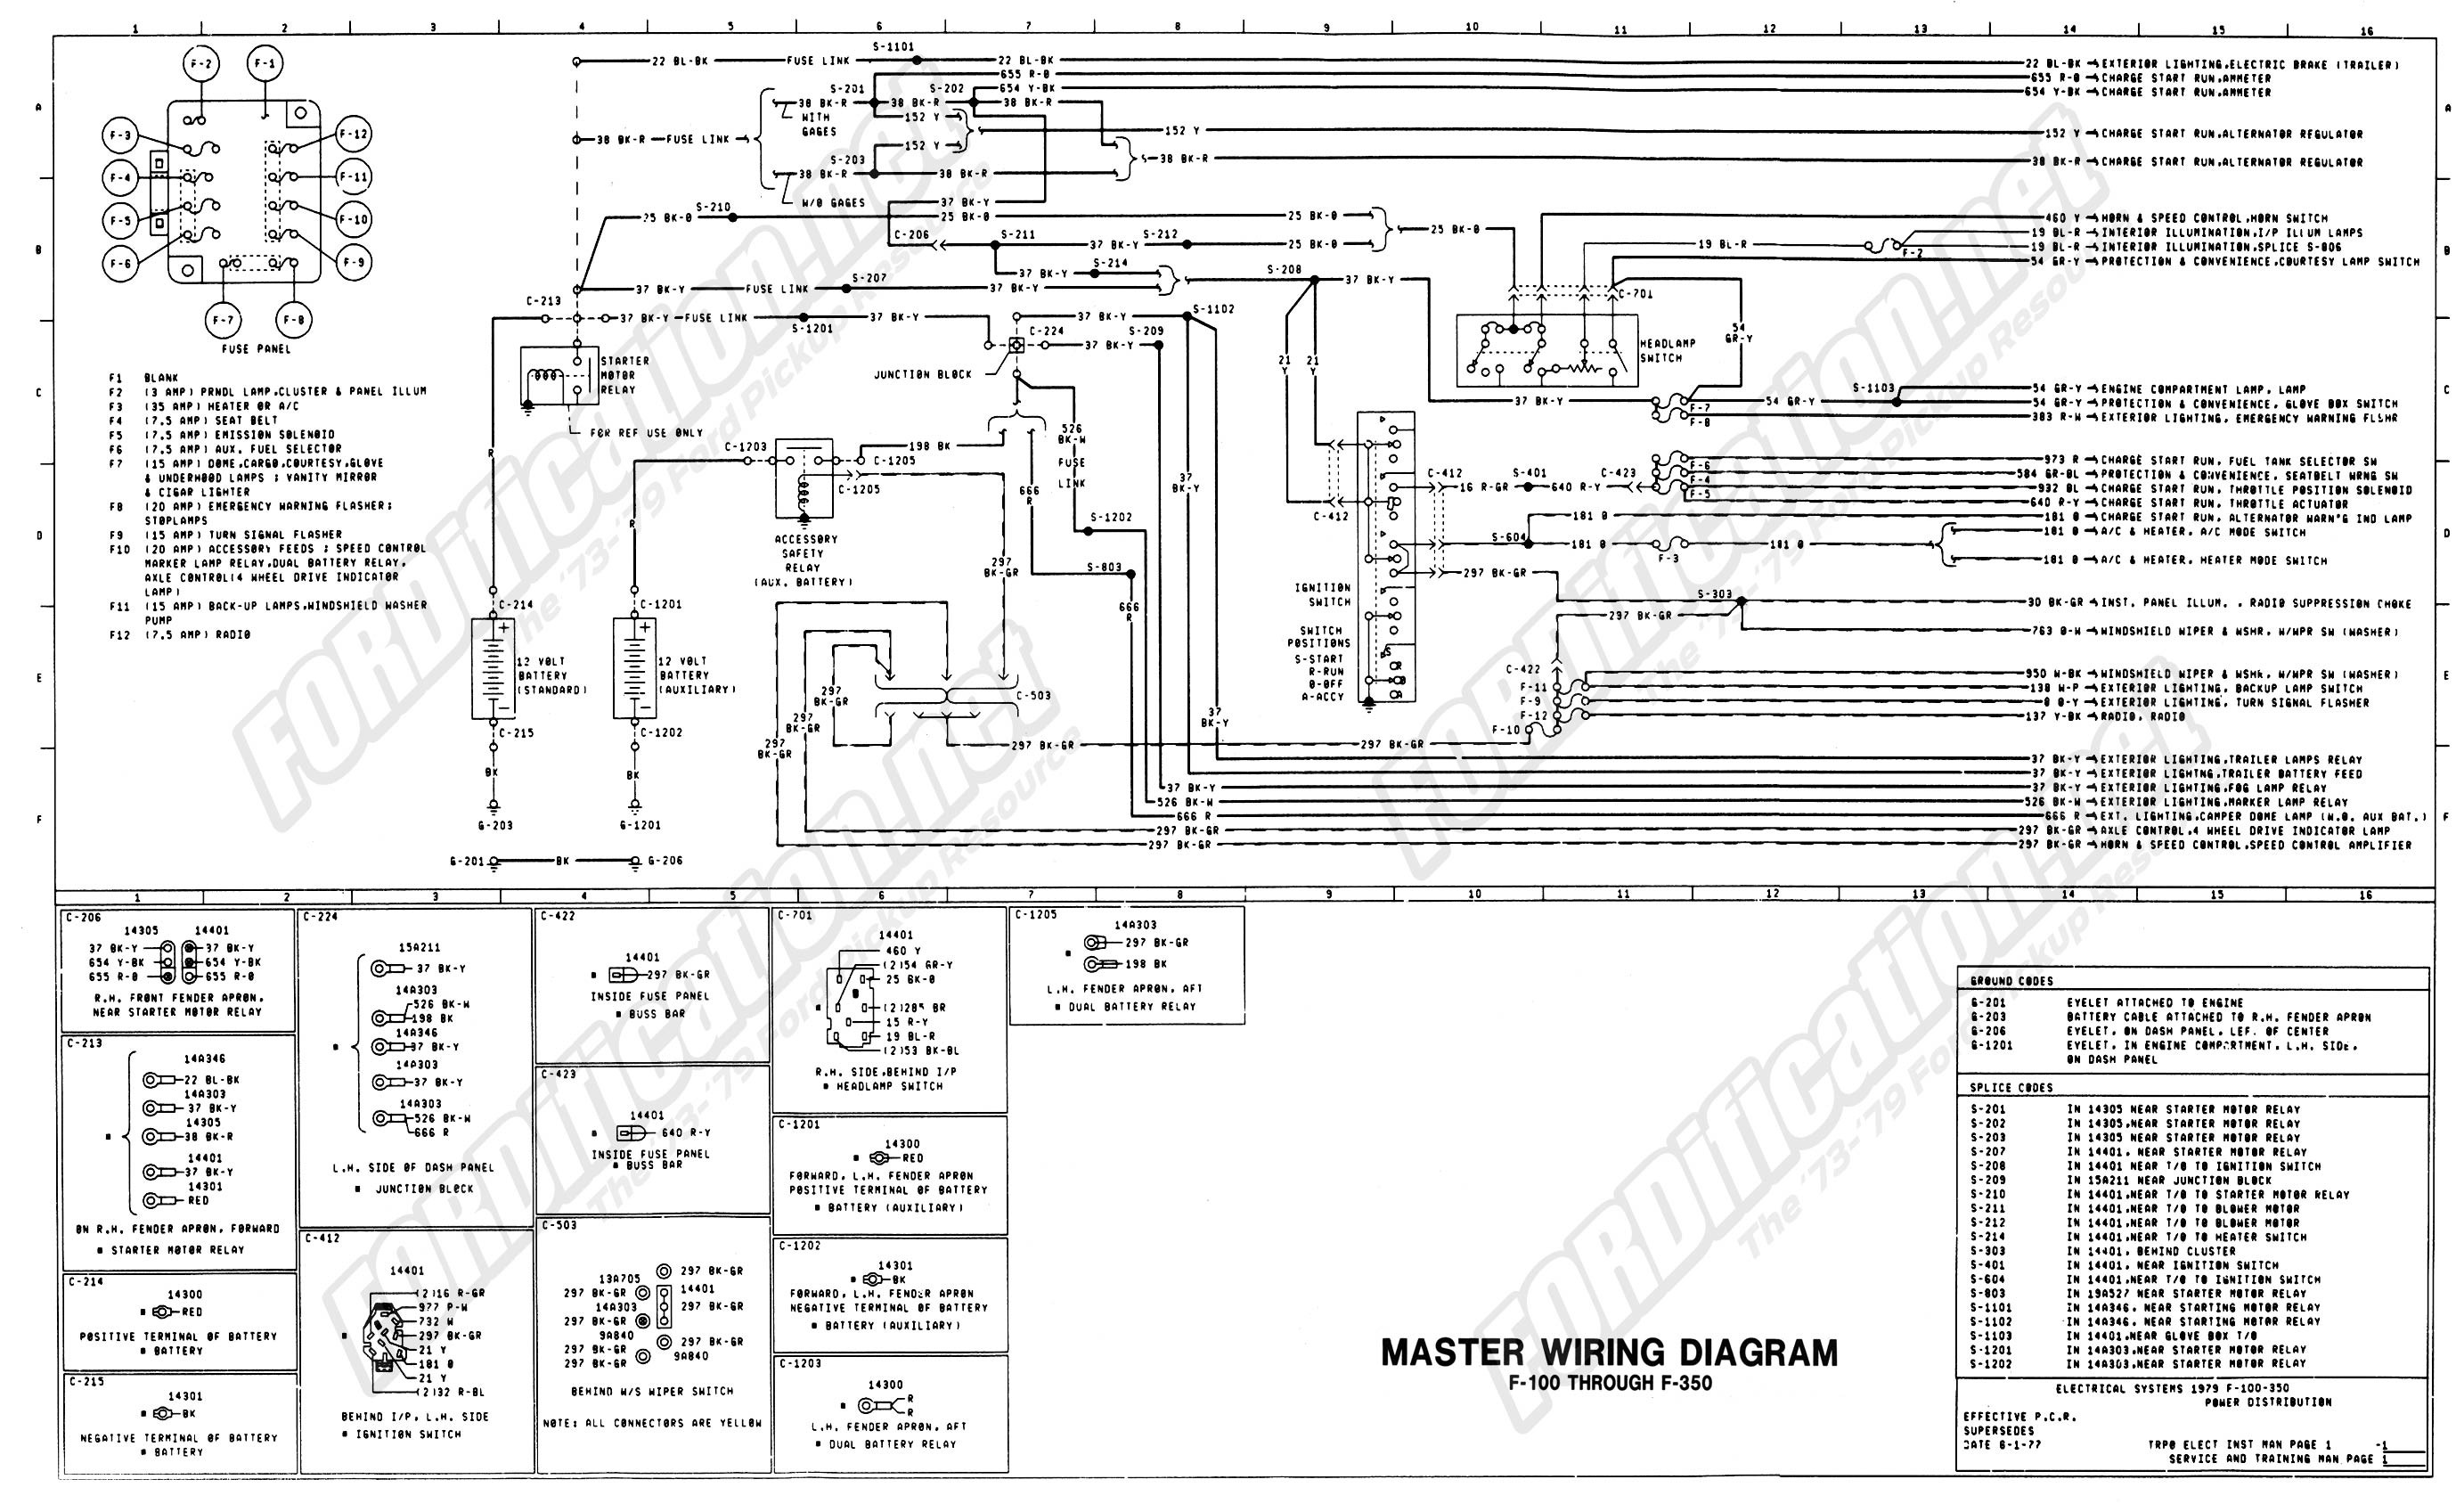 1970 Ford Wiring Schematic Library Parrot Ck3100 Diagram 15 Free And Truck Harness Trusted